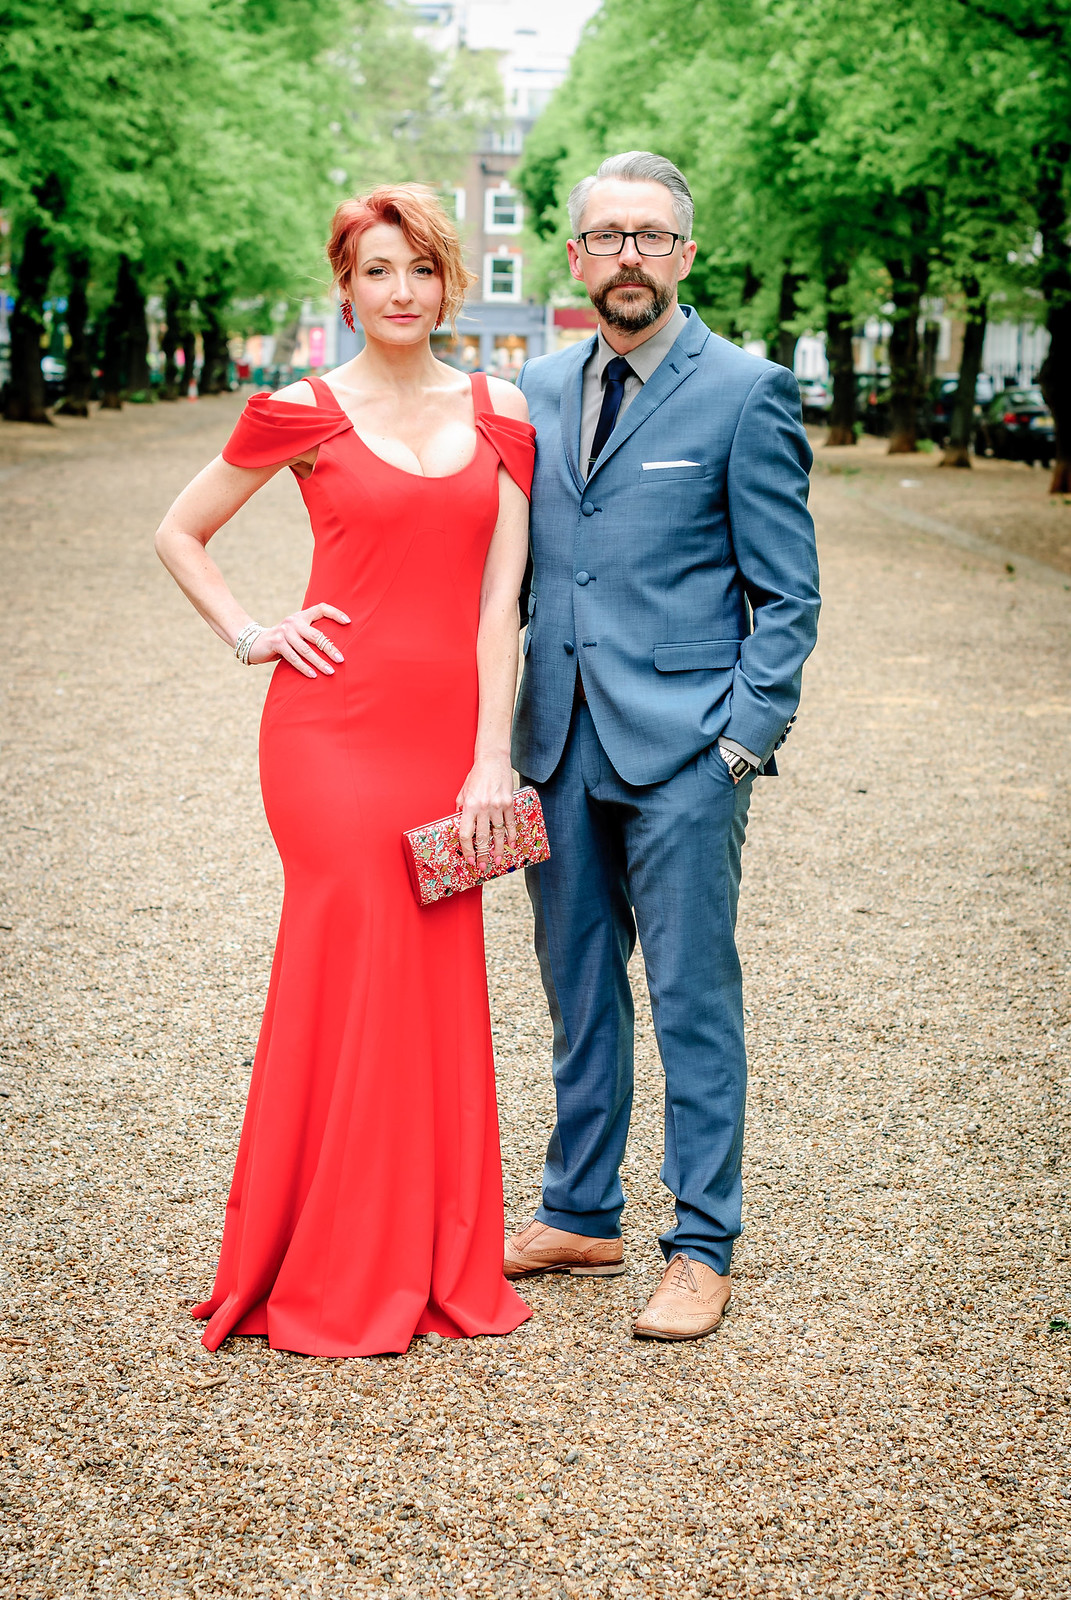 Awards ceremony outfit - Her: Long red fitted gown with shoulder detail Him: Mid blue suit with dark tie and tan brogues | Not Dressed As Lamb, over 40 style